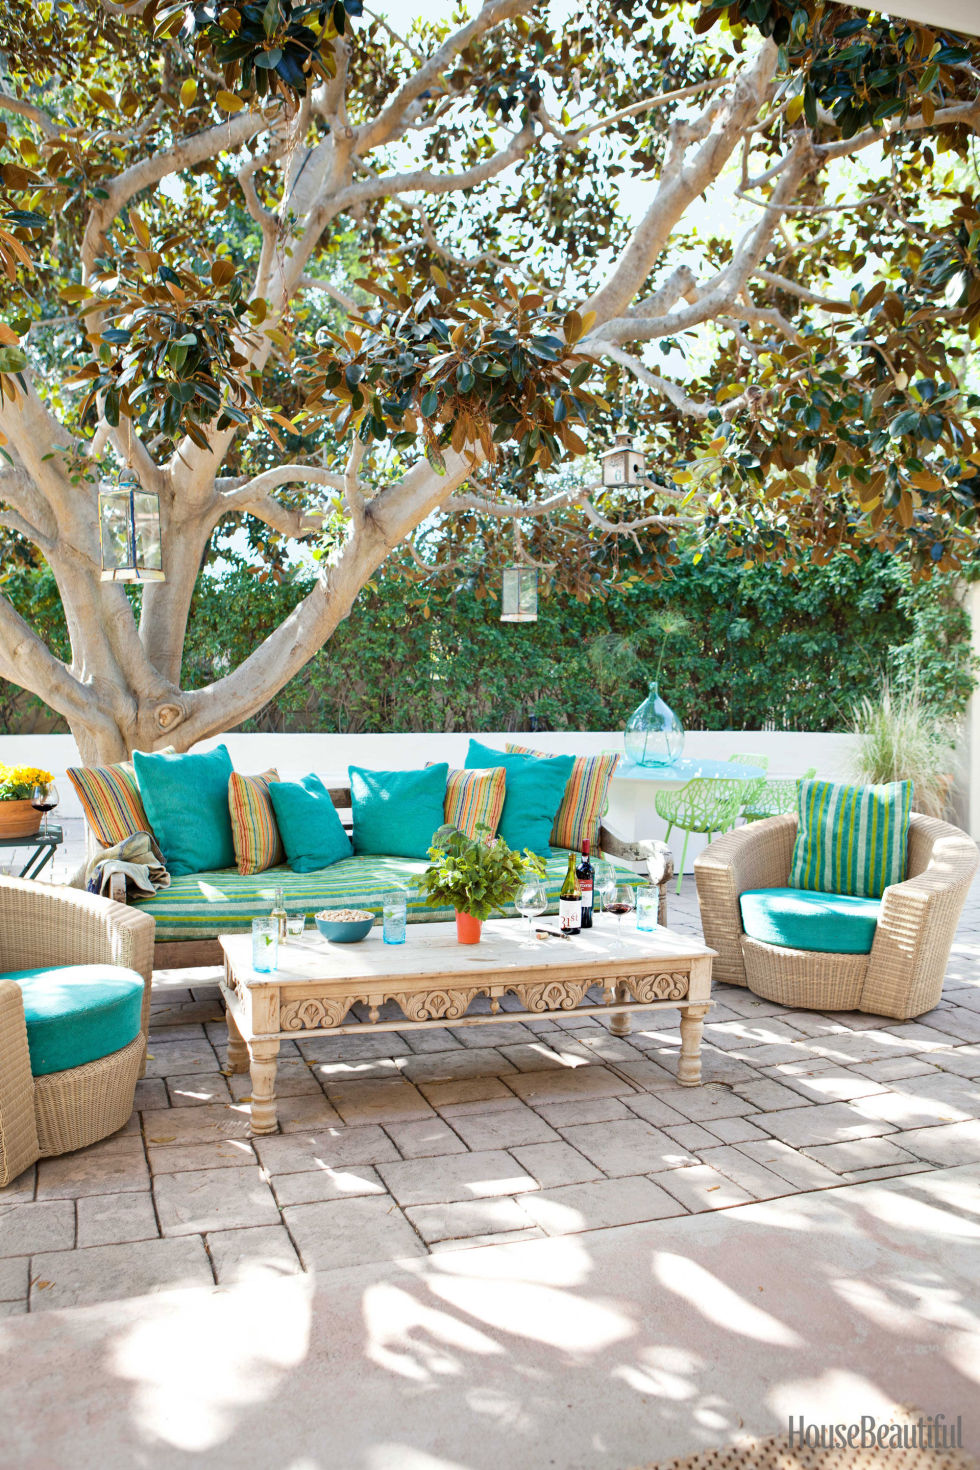 80 patio and outdoor room design ideas and photos - Outdoor Patio Design Ideas